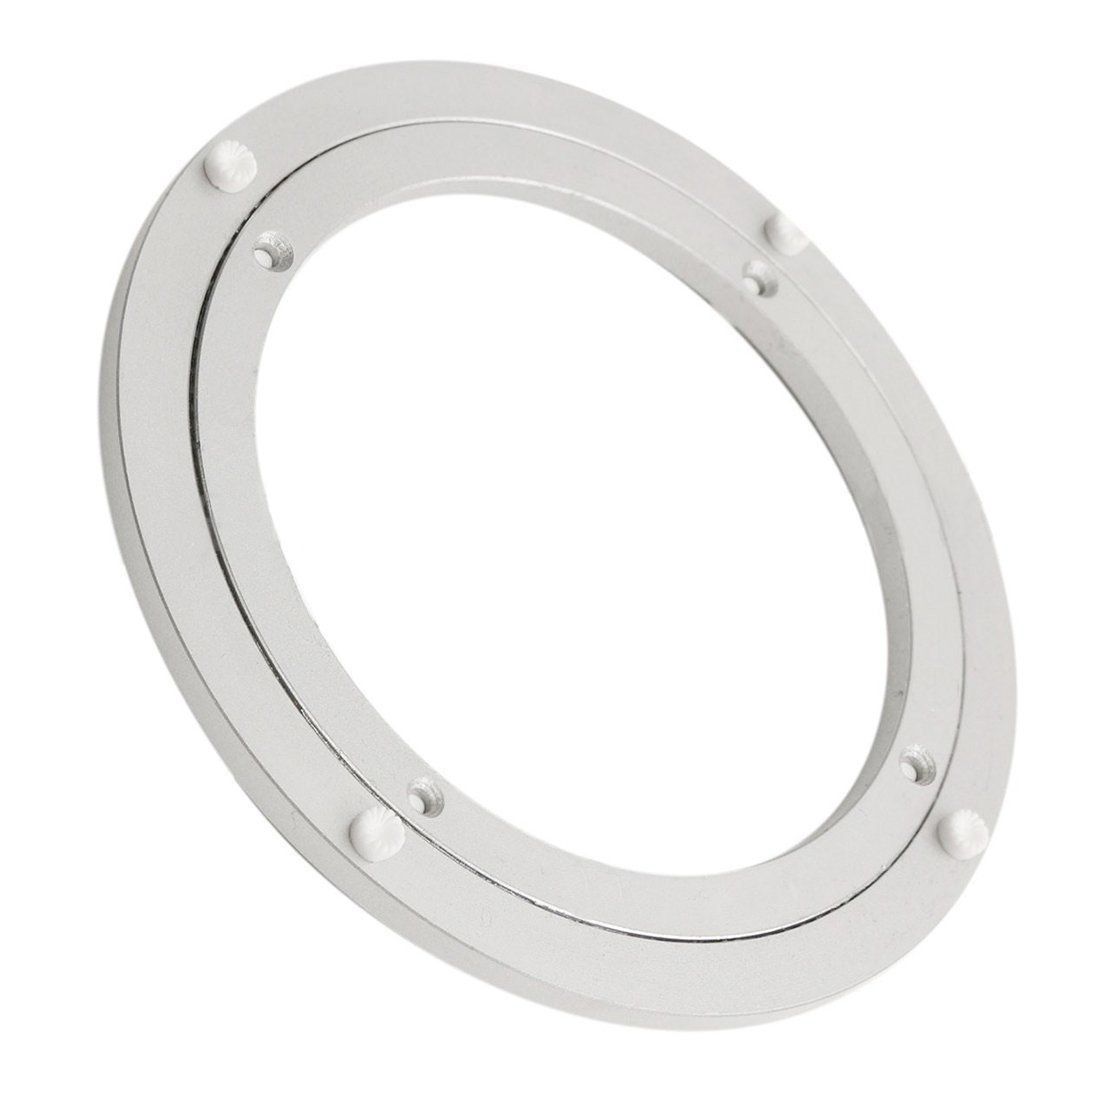 T&B 10 Inch Diameter Aluminum Metal Lazy Susan Hardware Rotating Turntable Bearings Swivel Plate 250mm Silver Turntable on Dining-table